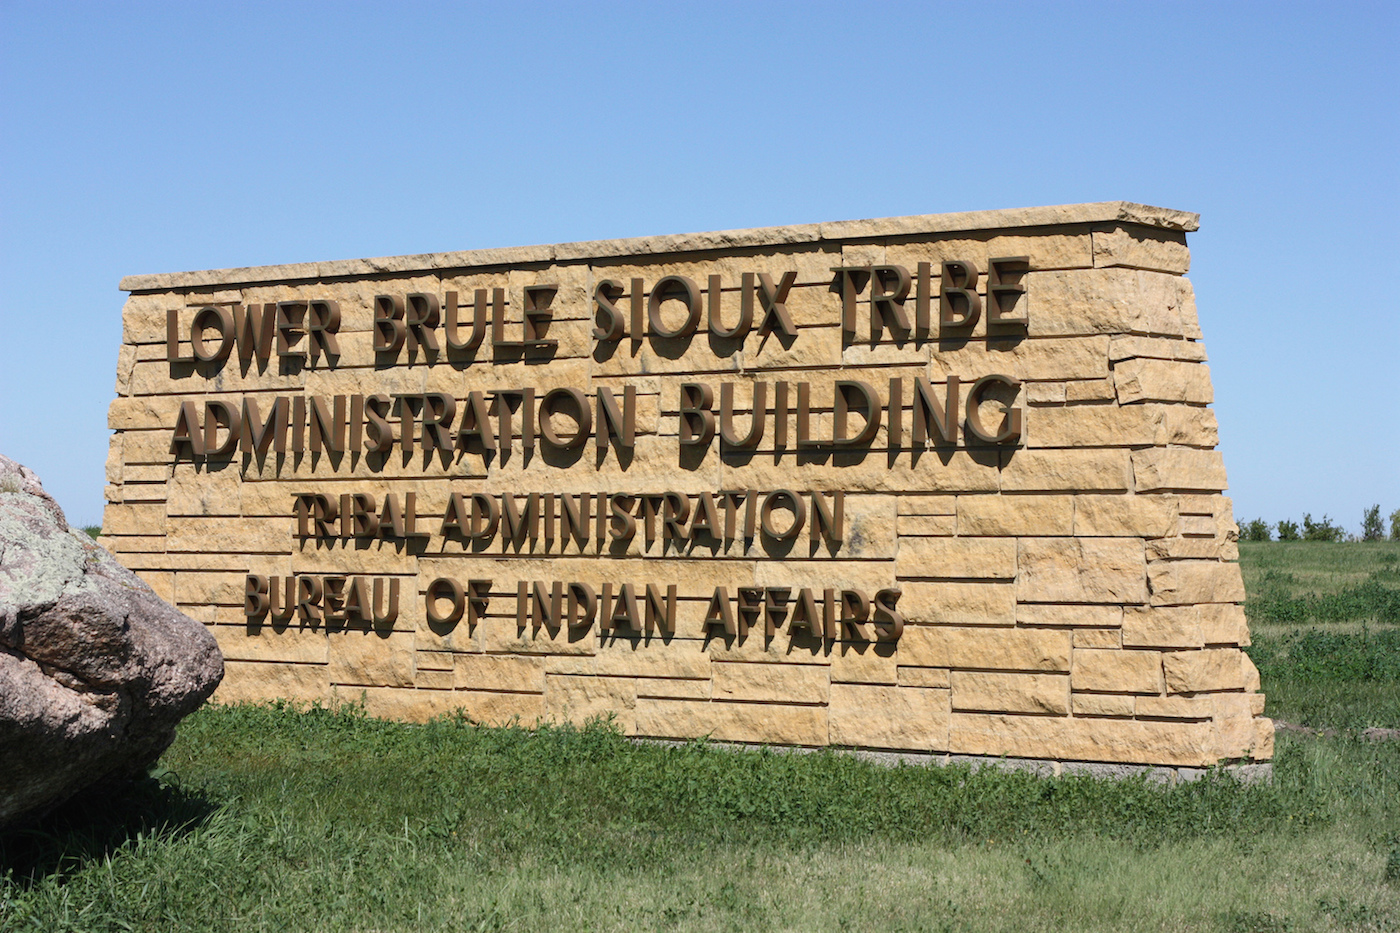 Lower Brule Sioux Tribe asks BIA to inspect financial documents